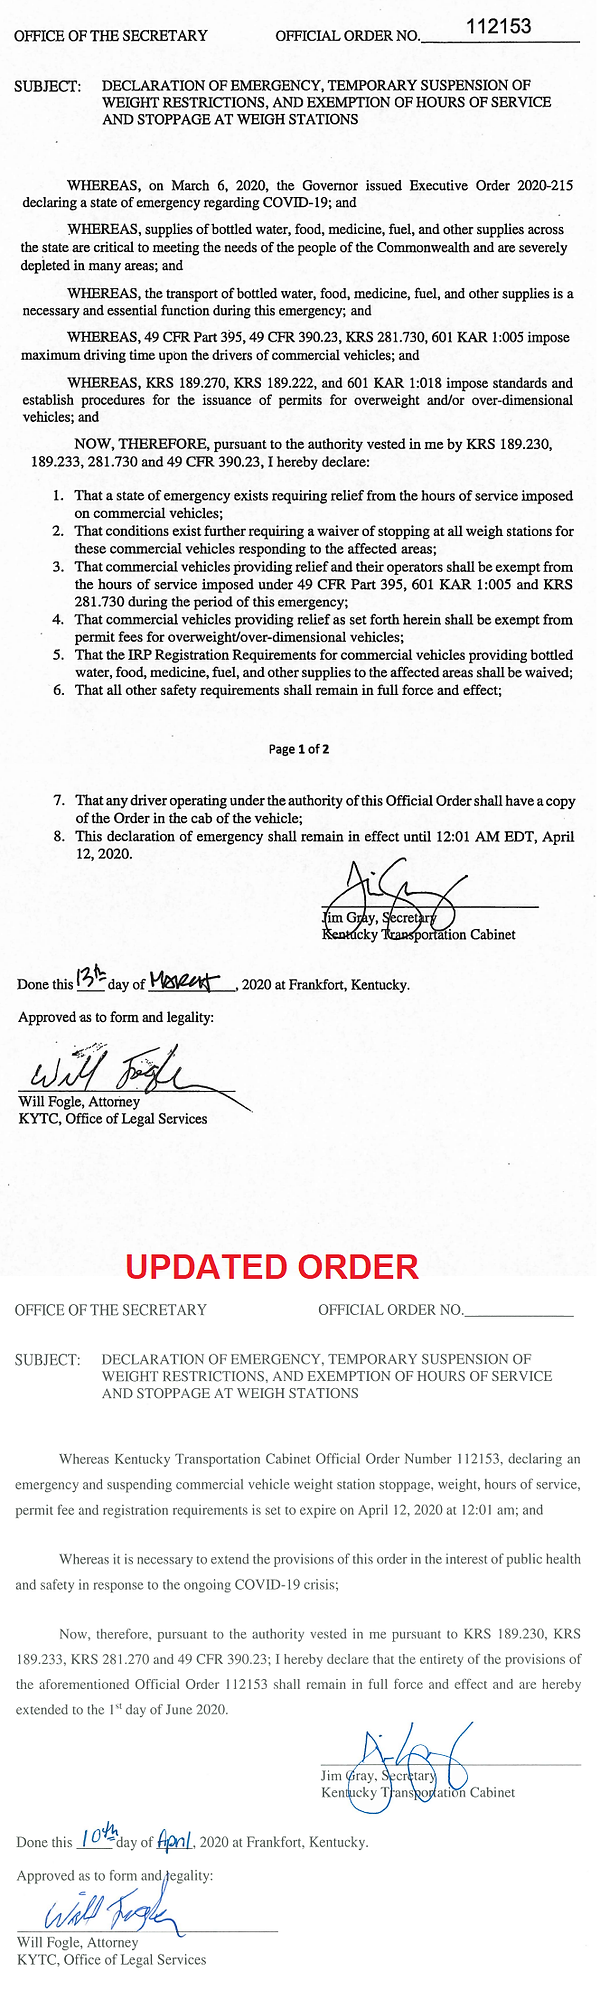 KY EXEC. ORDERS.png